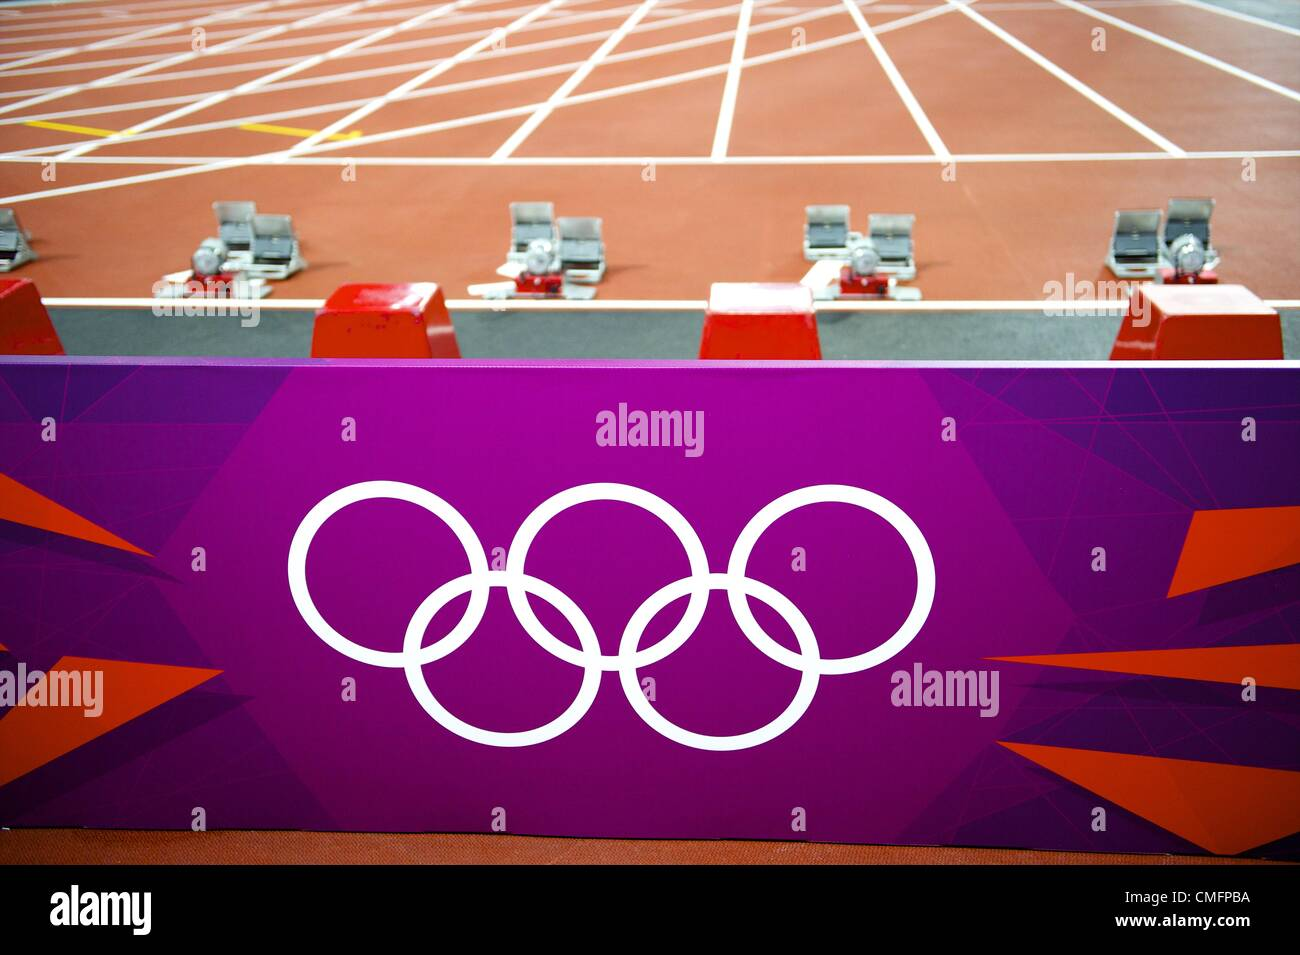 Aug. 3, 2012 - London, England, United Kingdom - Sprint blocks are in place for the 100m final and 110m hurdles - Stock Image